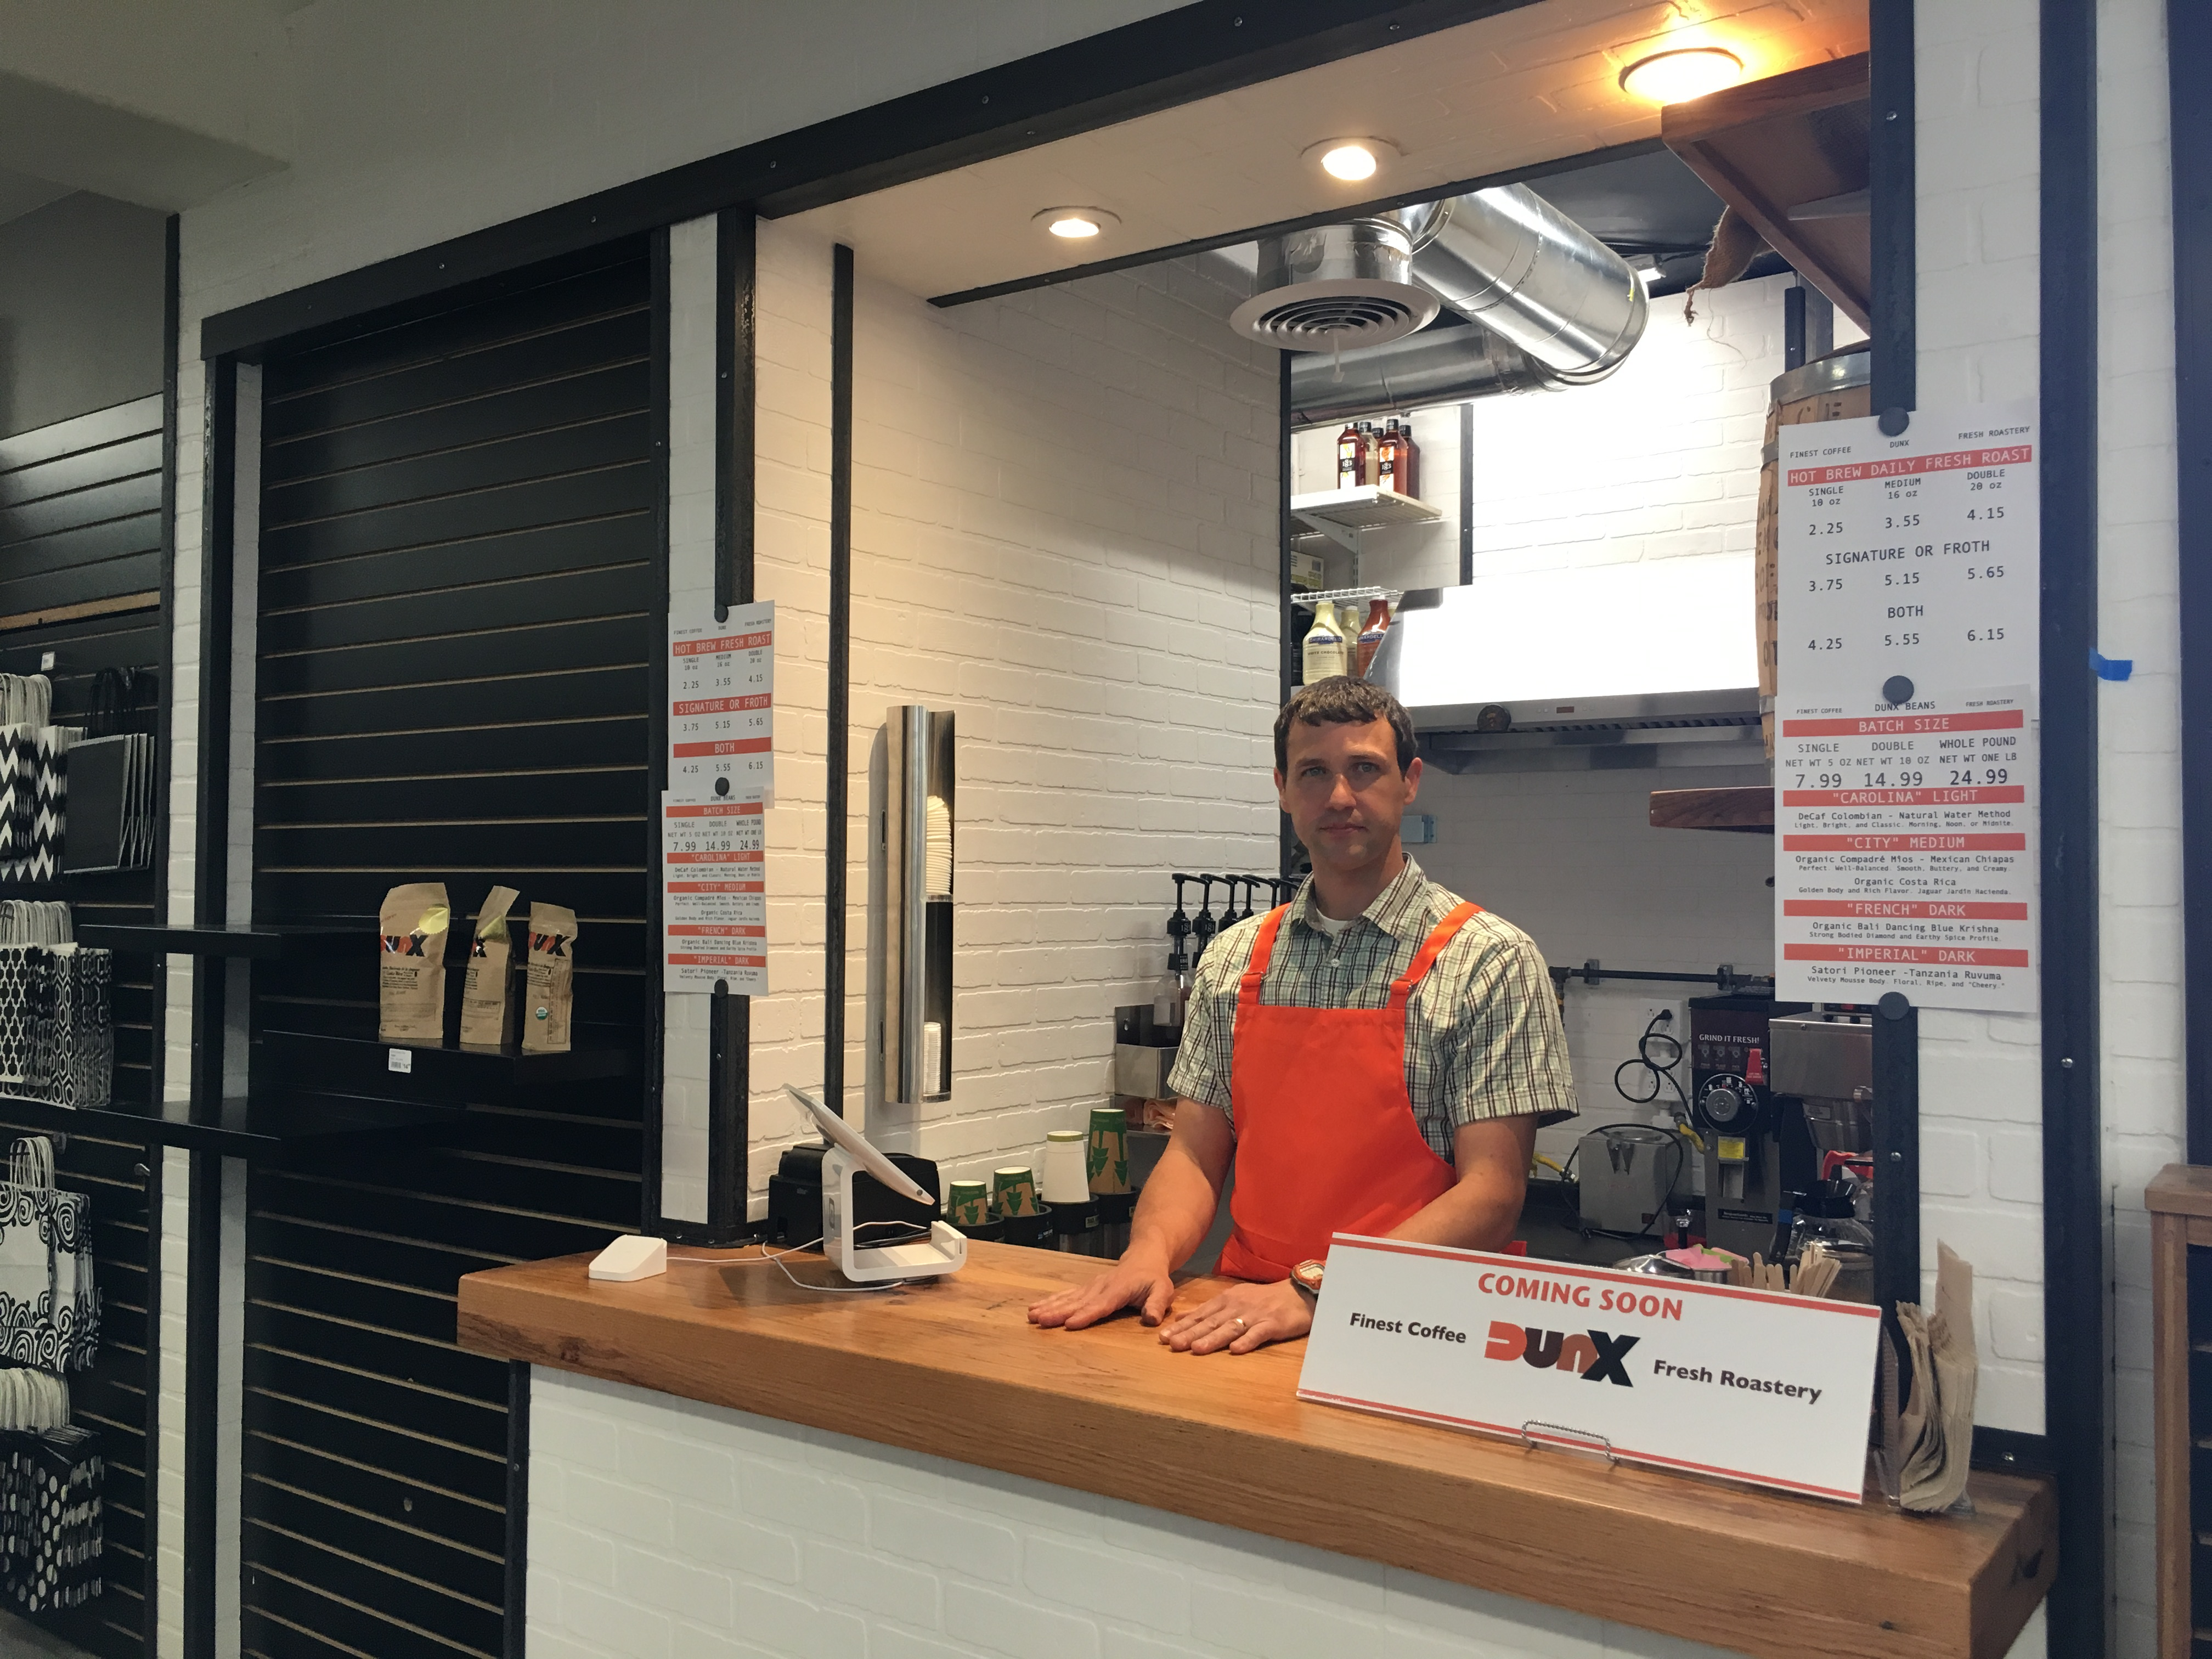 Duncan St. Clair brings organic coffee to Blackhawk Hardware at Park Road Shopping Center